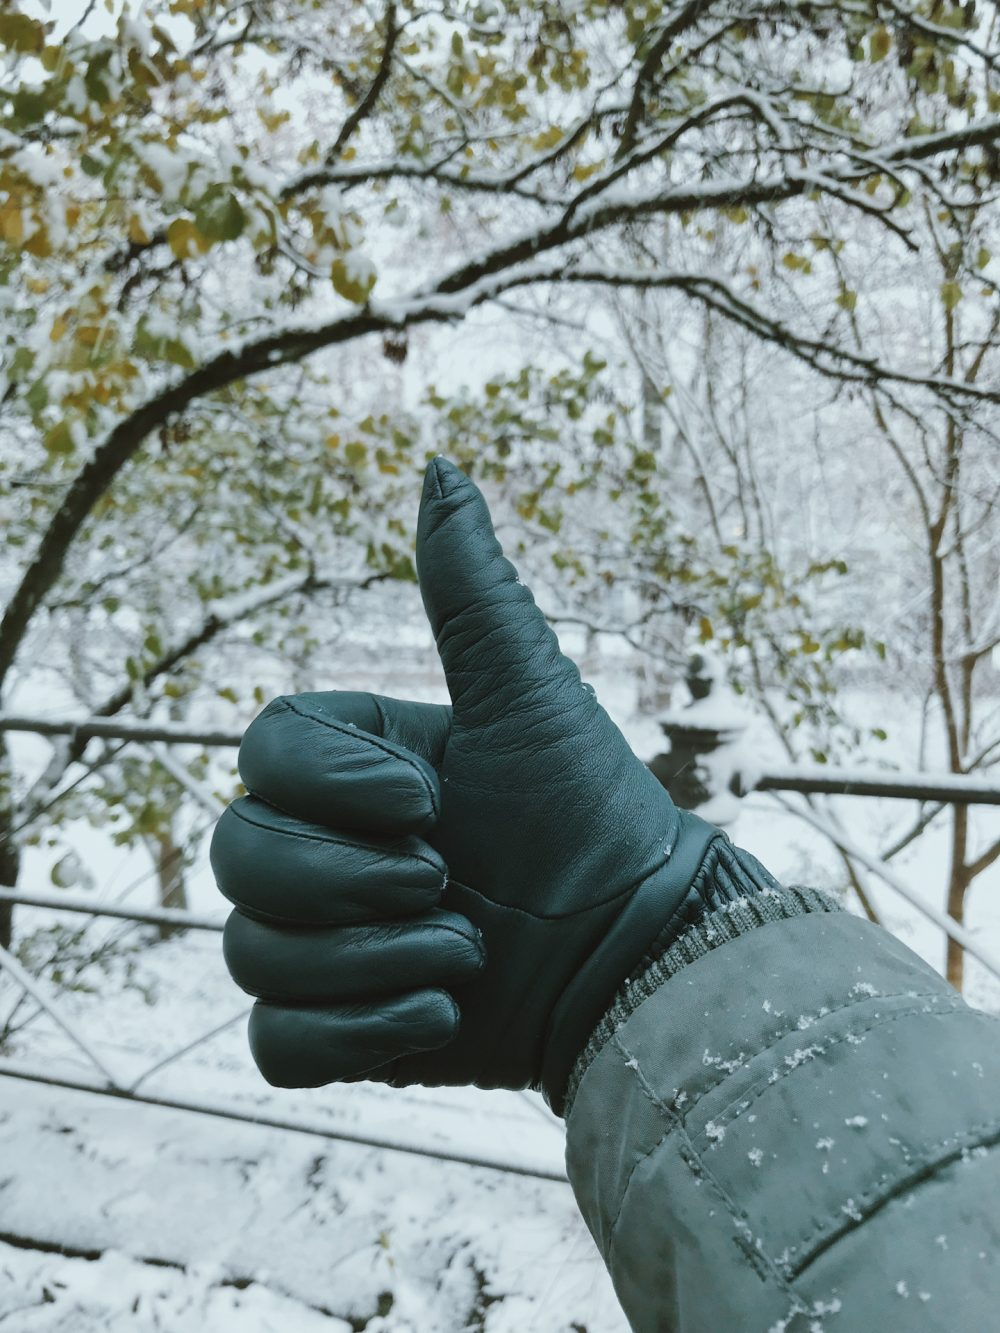 A thumbs up in green leather gloves with snow in the background